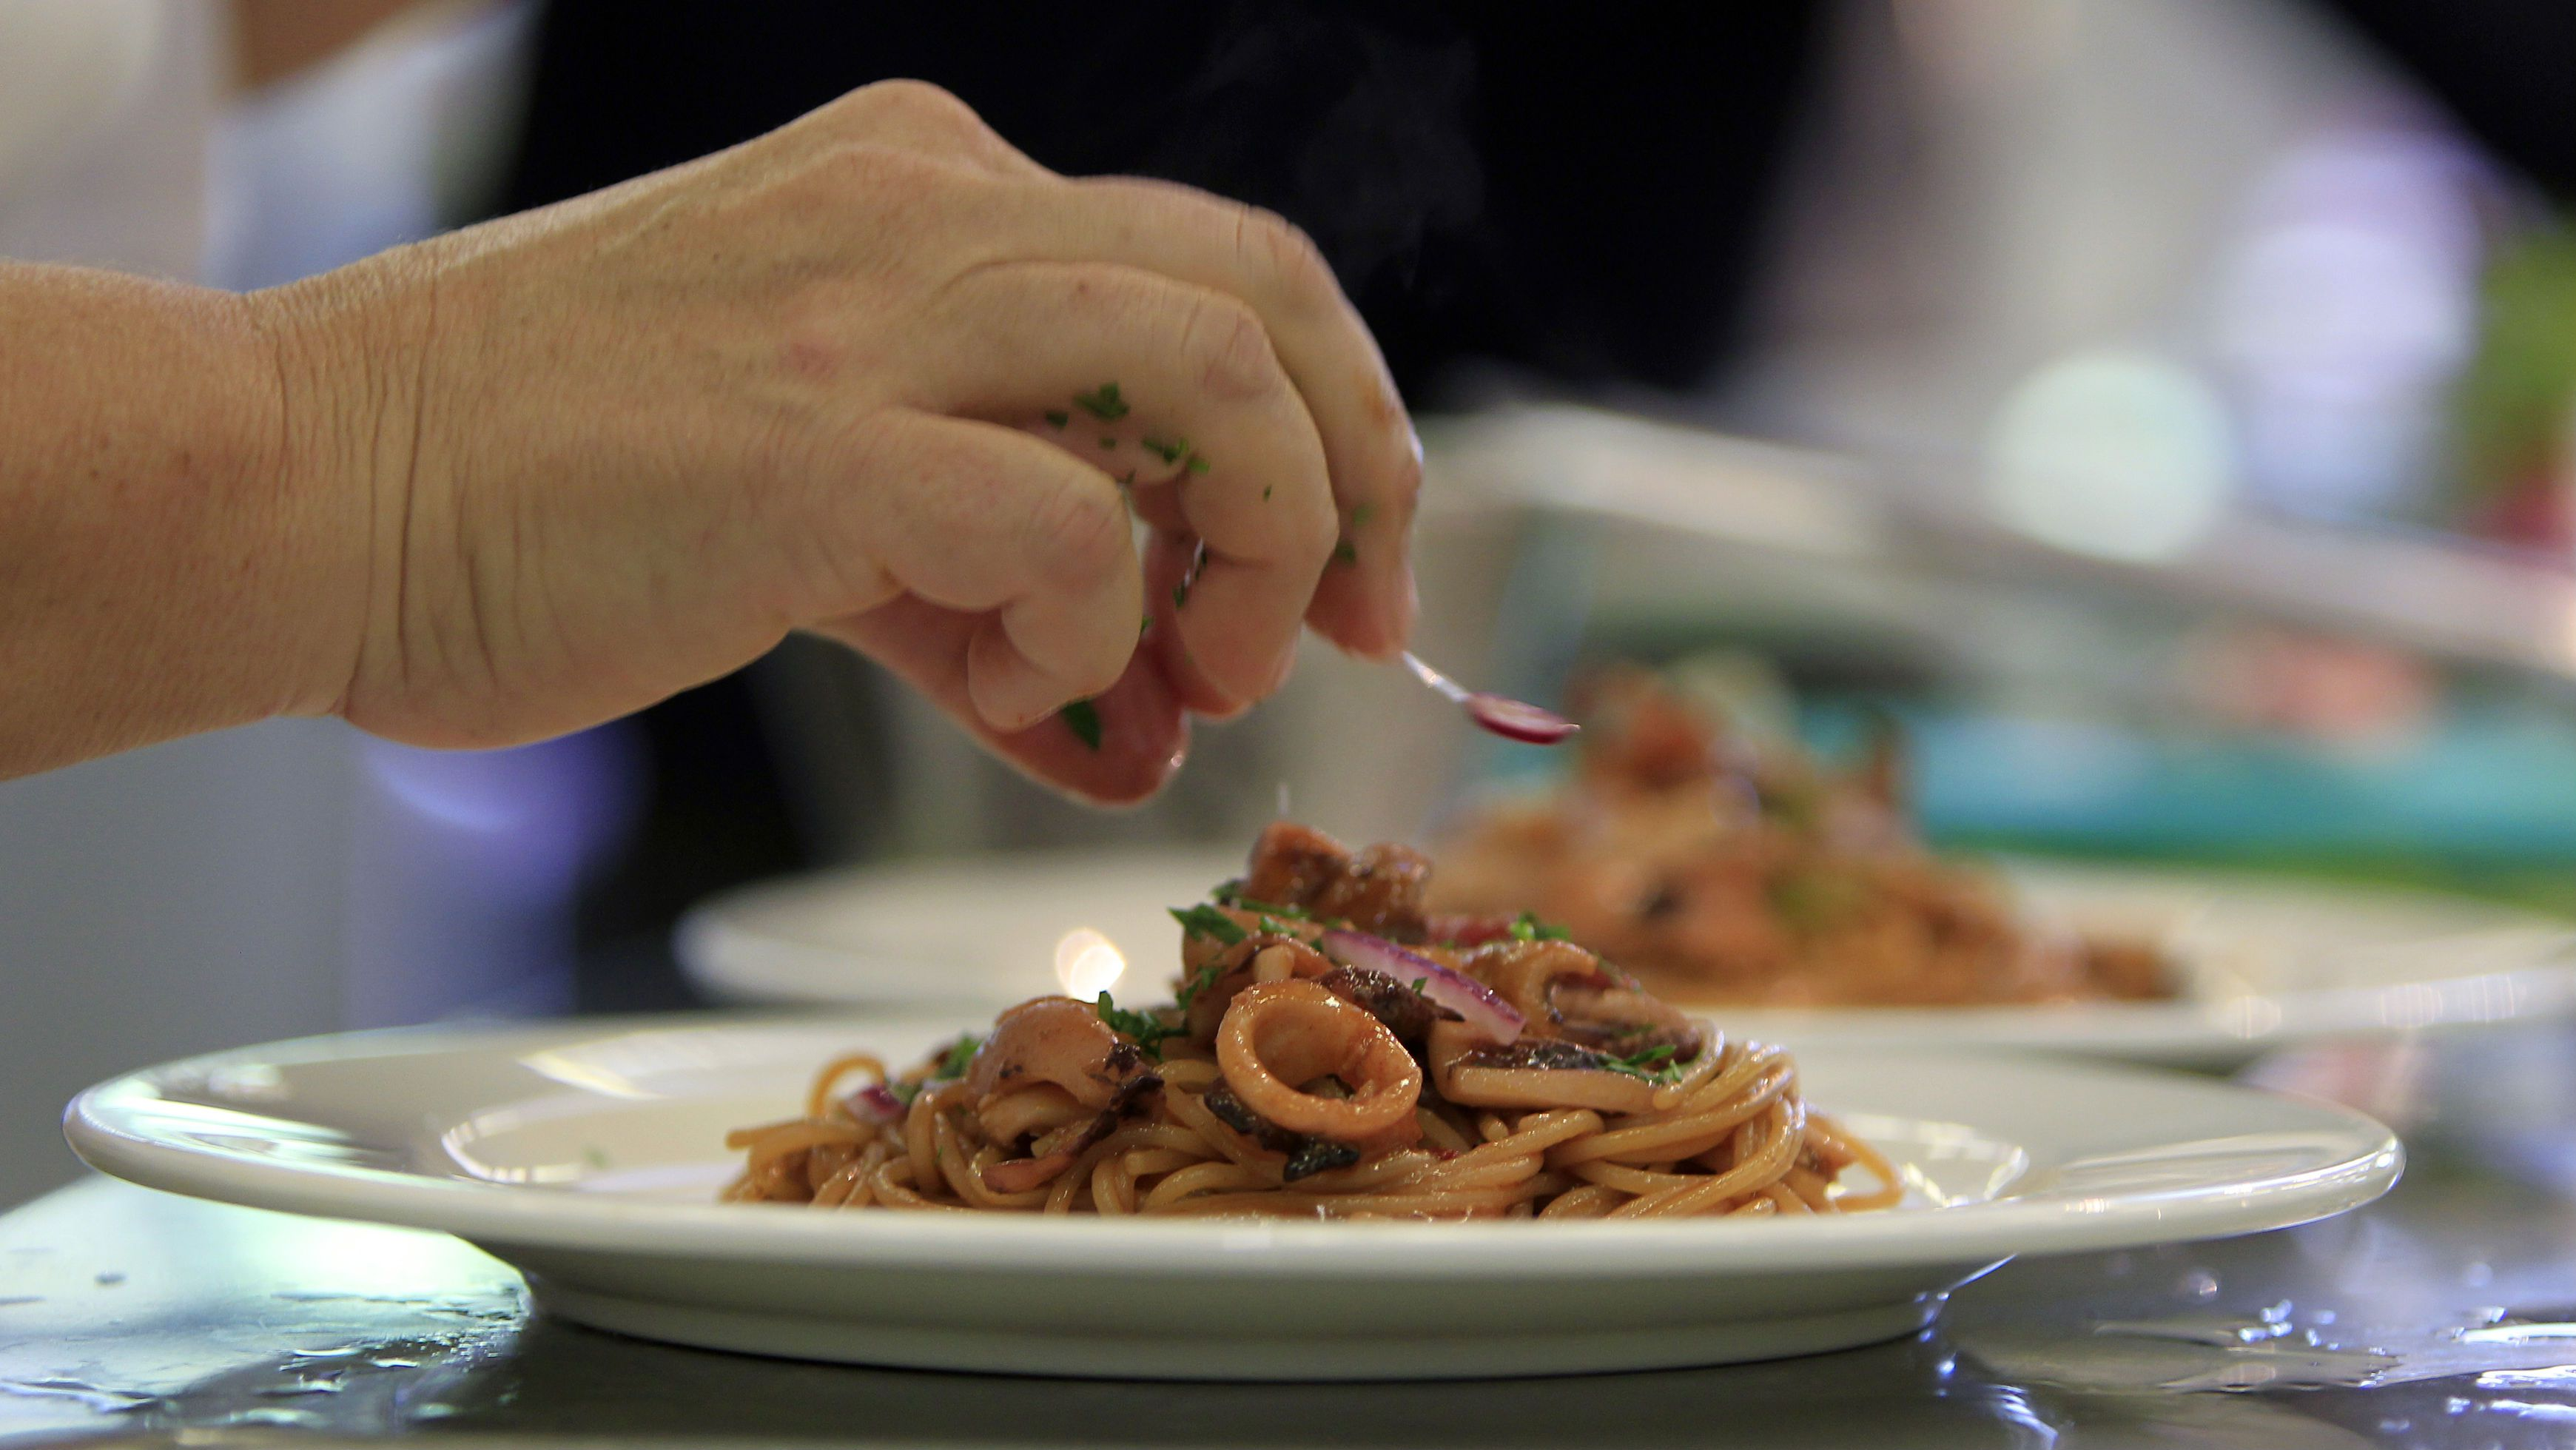 A pasta creation is seen during the Pasta World Championship in Parma June 14, 2013. Chefs from 20 countries are taking part in the championship. REUTERS/Alessandro Garofalo (ITALY - Tags: FOOD SOCIETY)